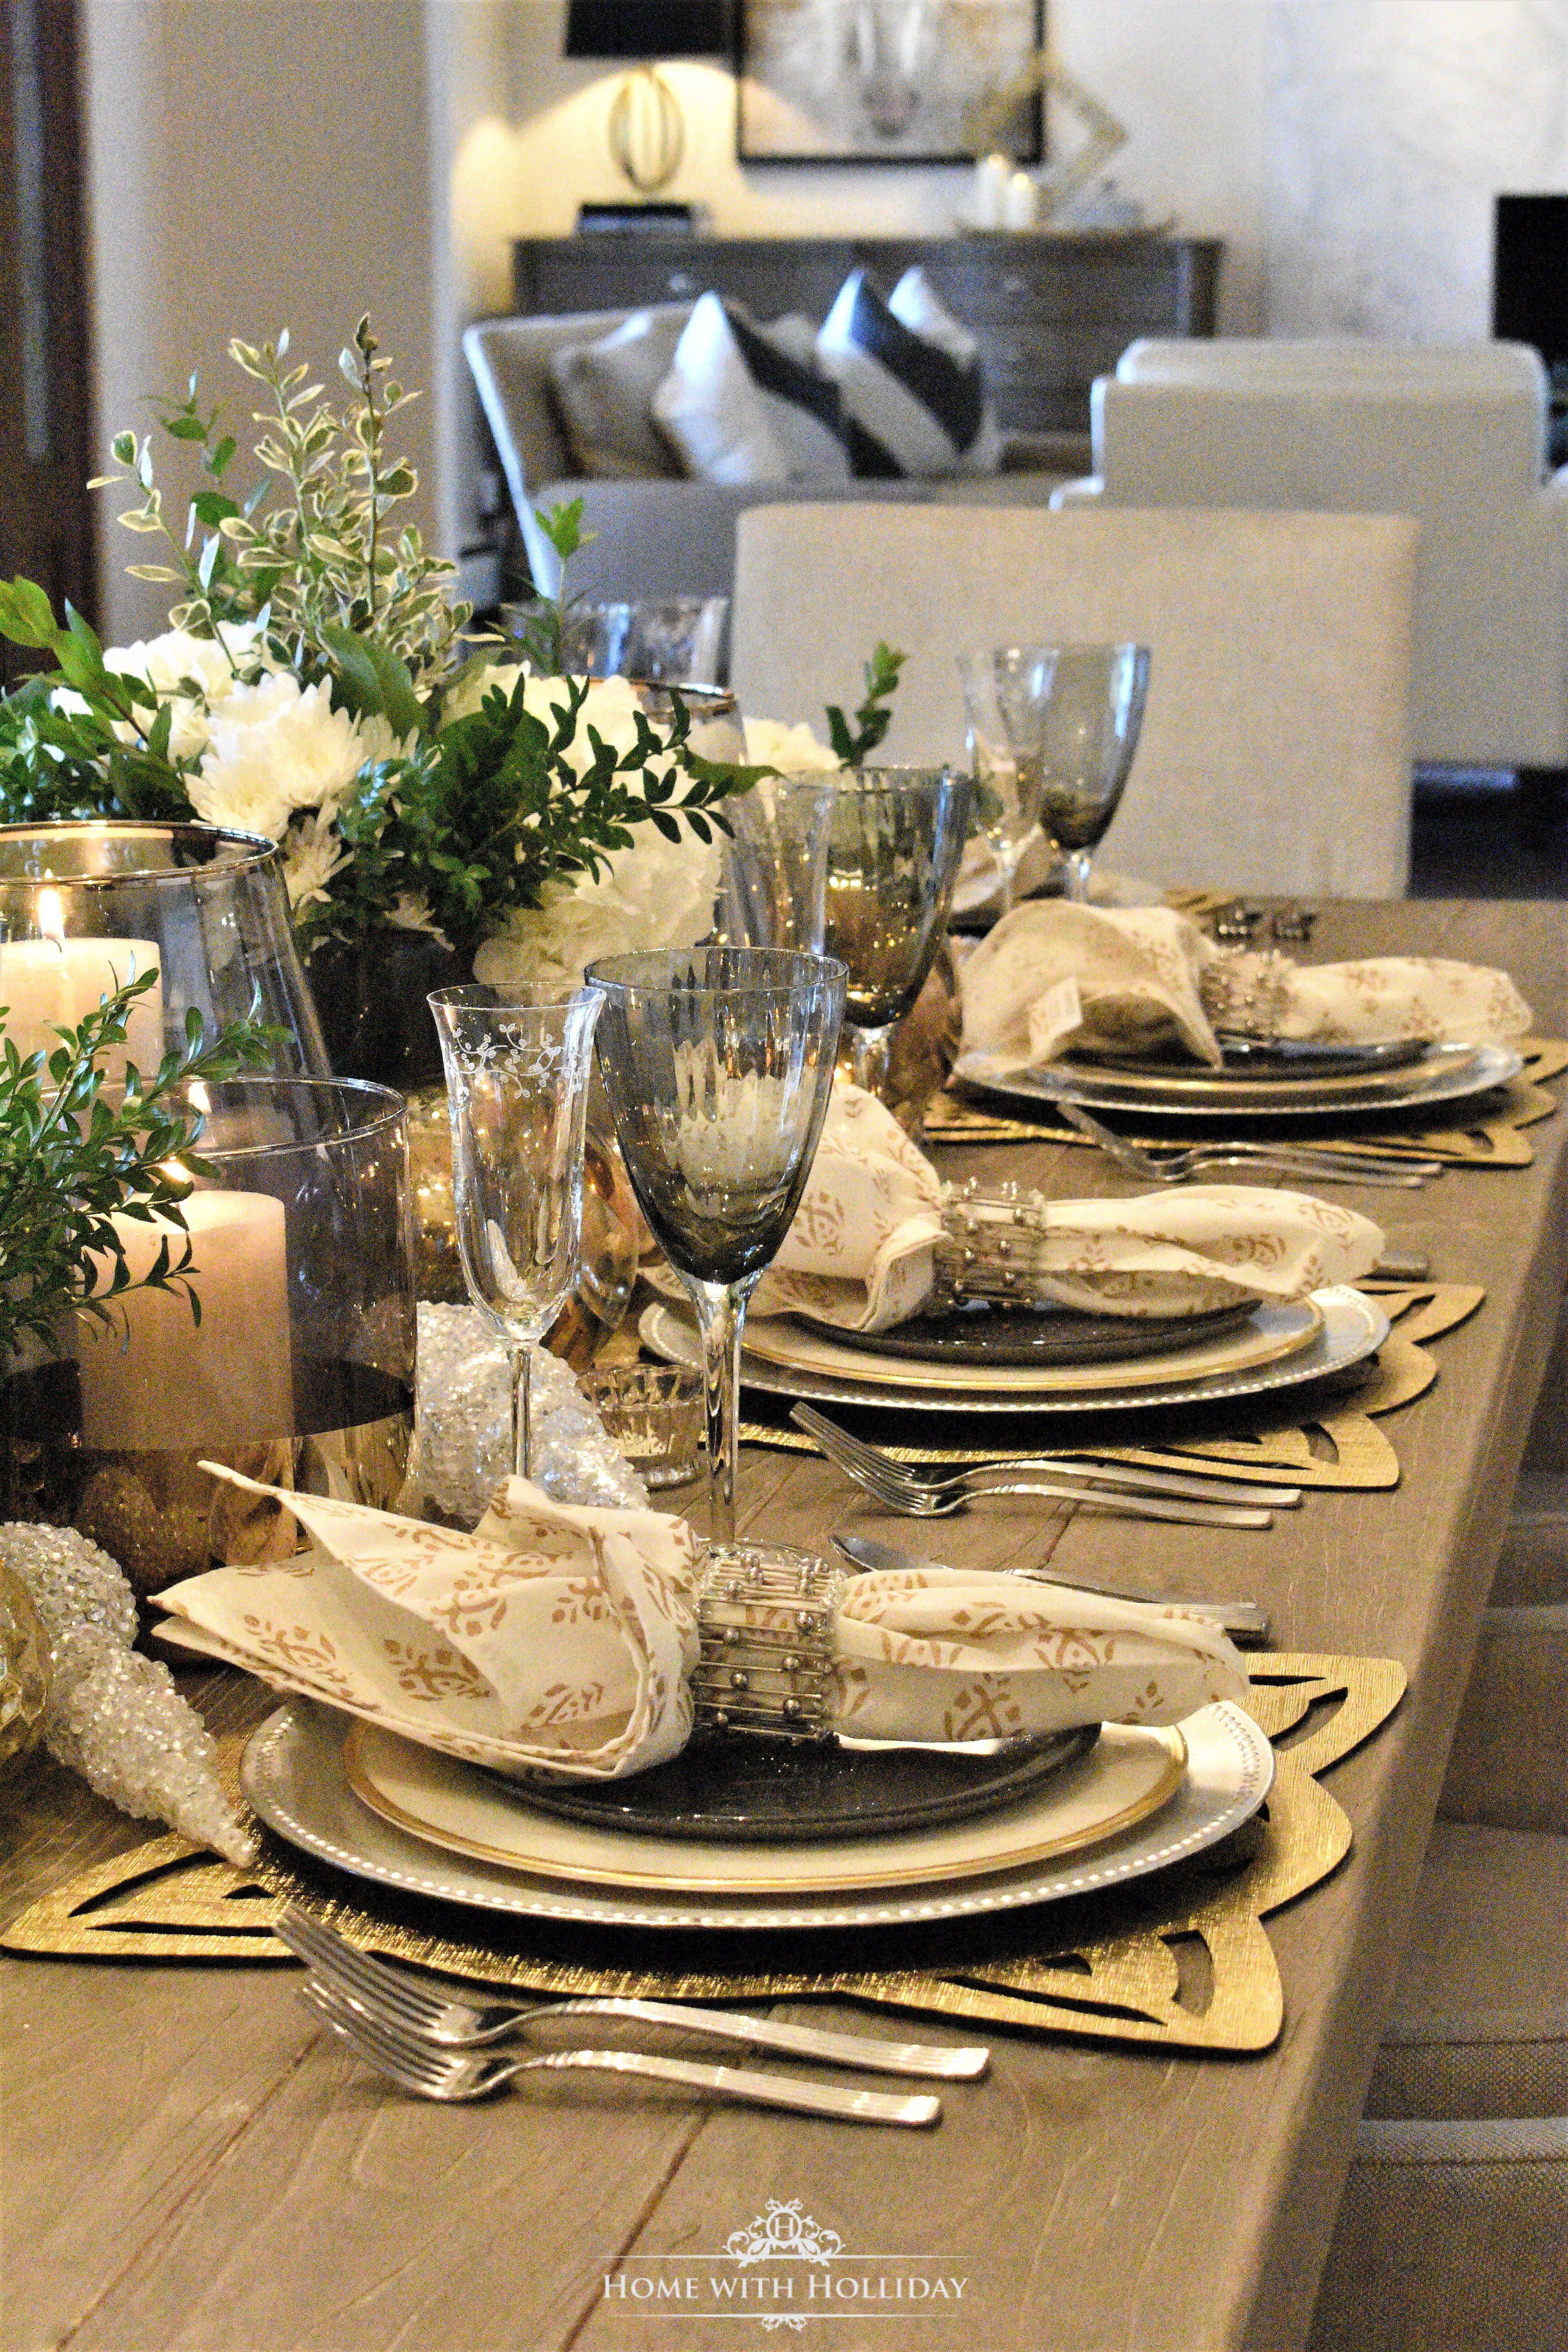 Gold and Silver Table Setting - New Yearu0027s Eve or Christmas - Home with Holliday : silver table setting - Pezcame.Com